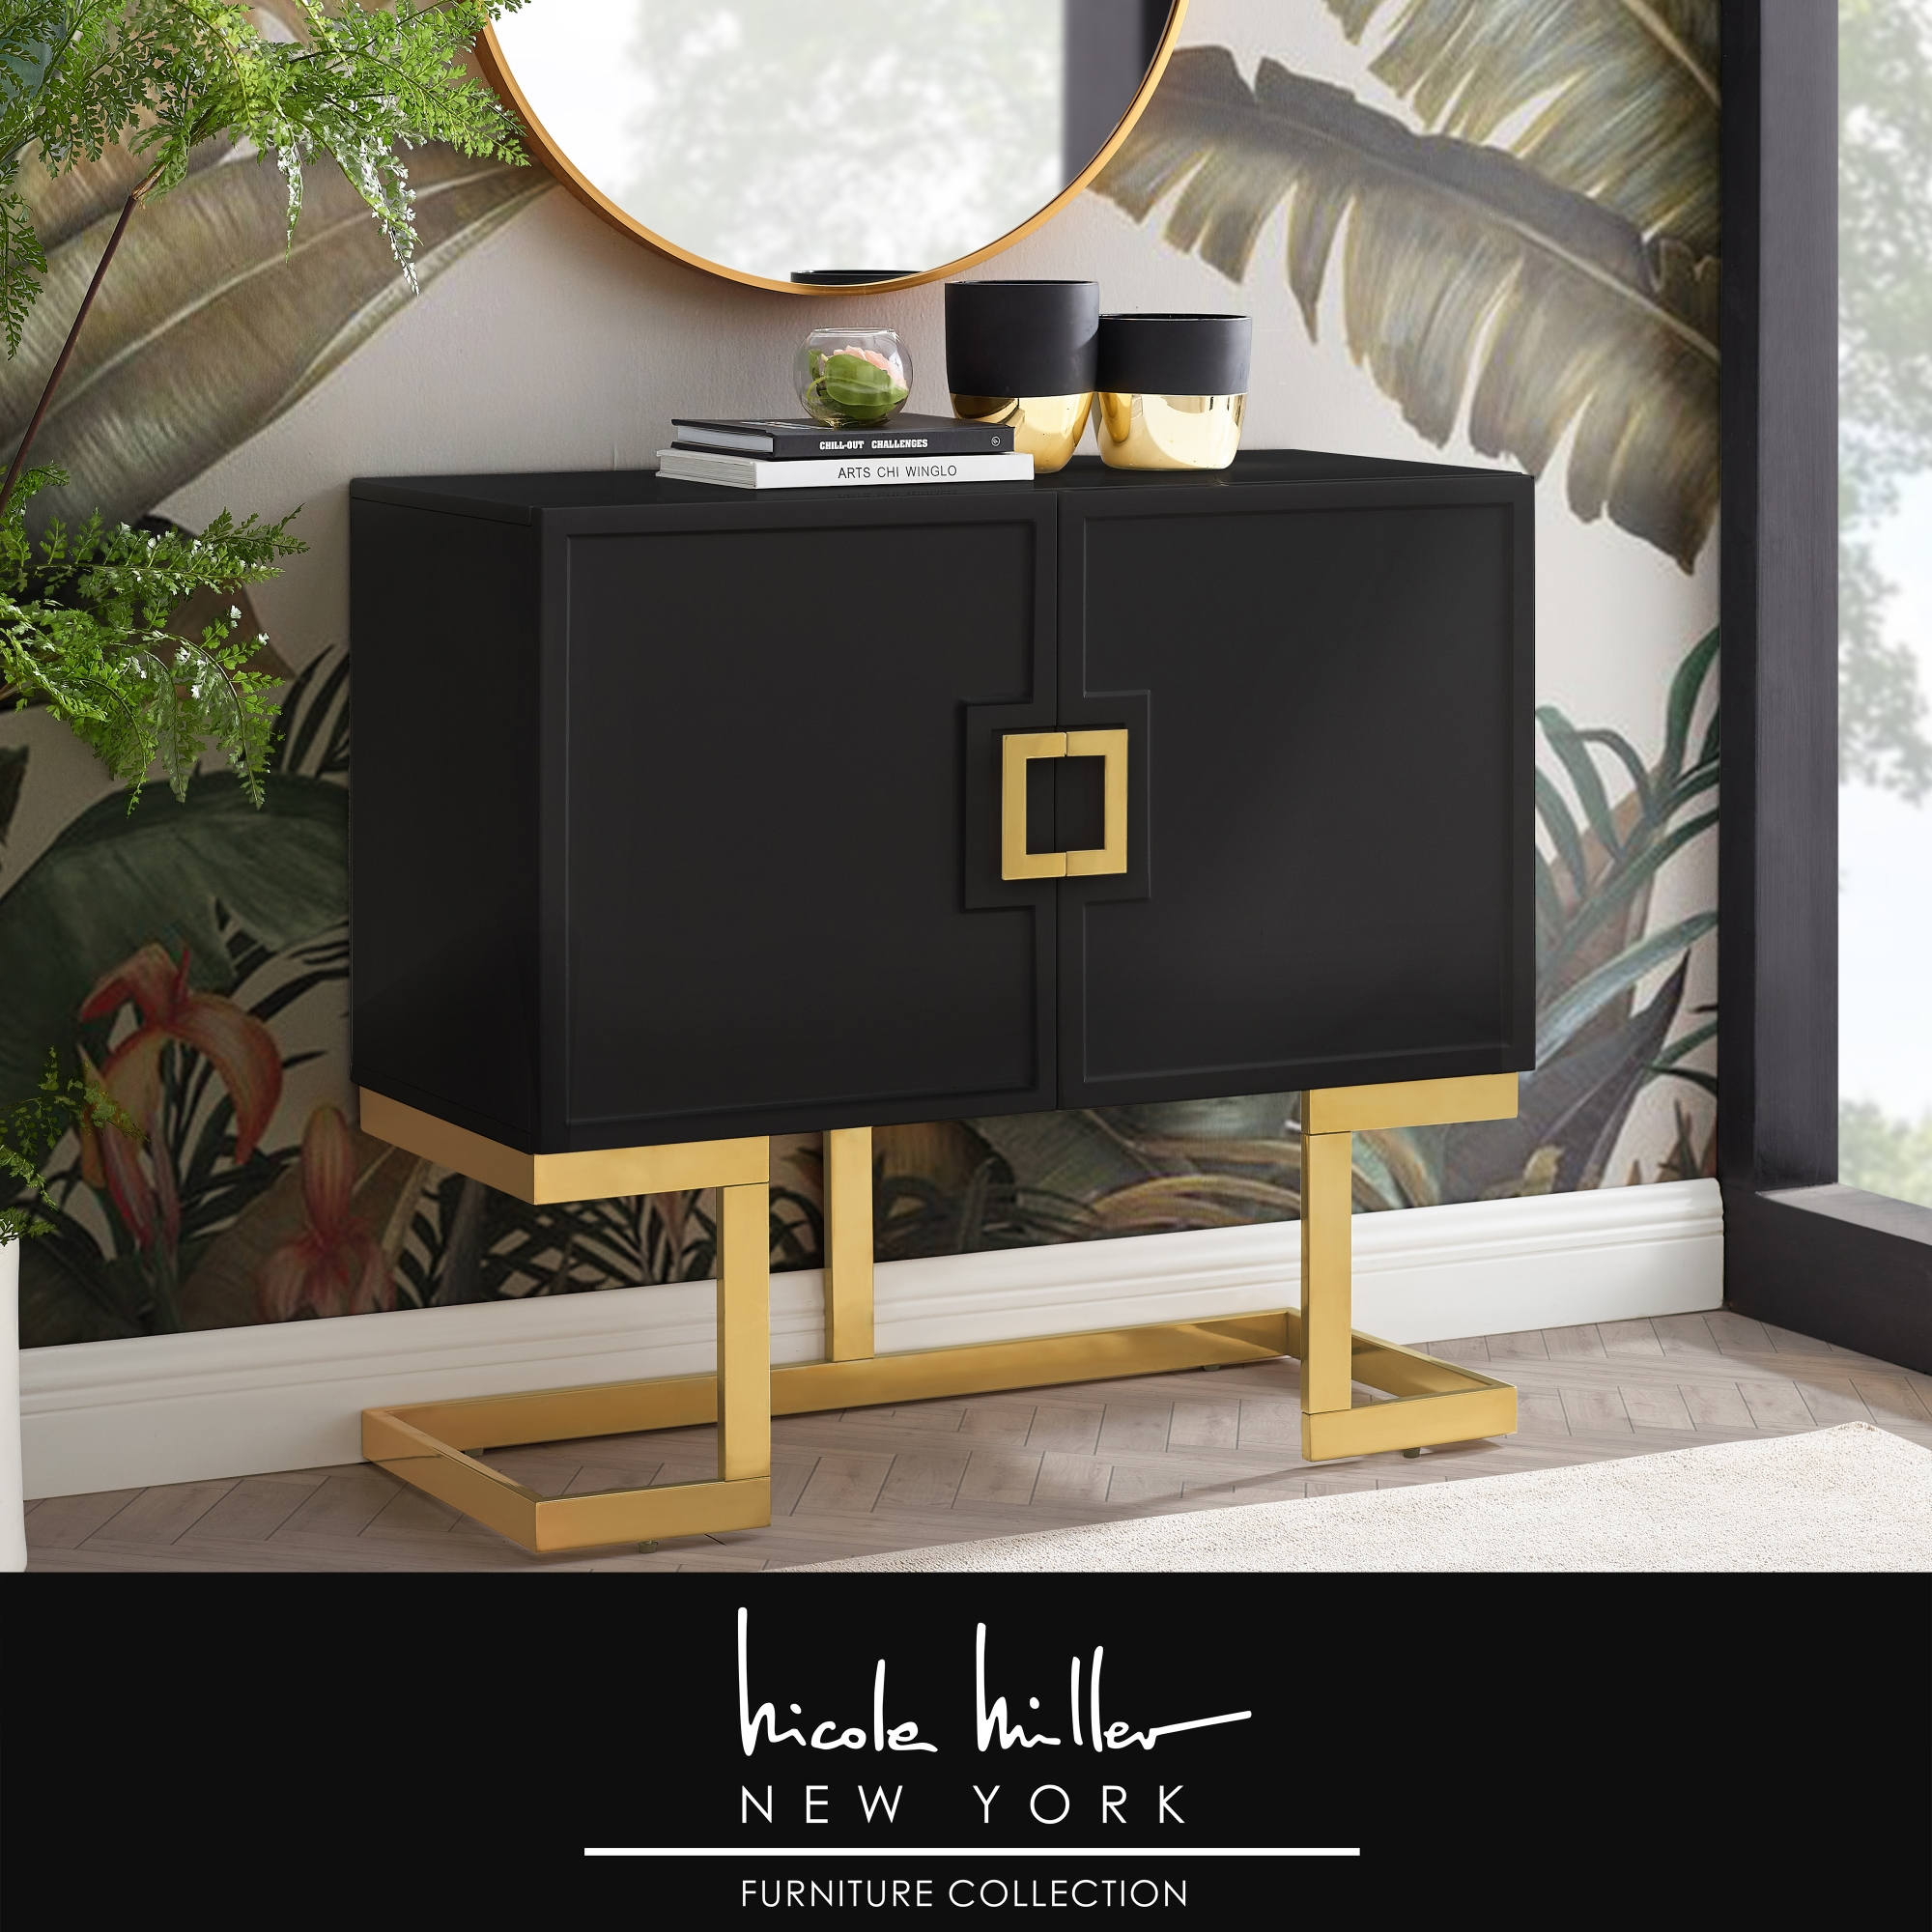 Nicole Miller Black/Gold Cabinet 2 Doors 2 Adjustable Shelves 4 Compartments Hight Gloss Lacquer Finish